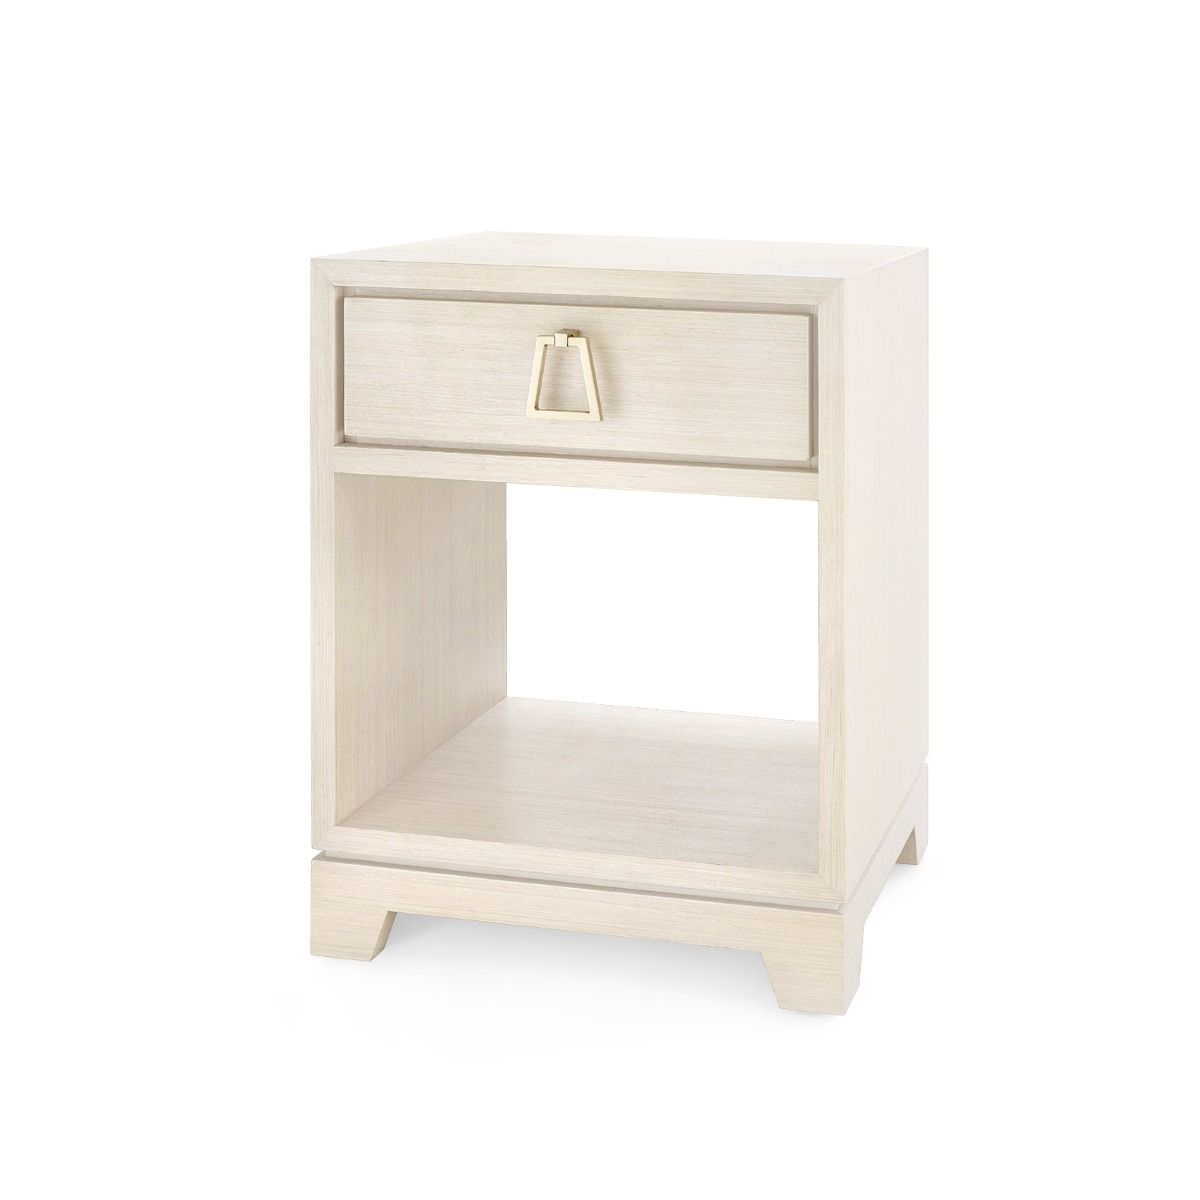 Bungalow 5 - Stanford 1-Drawer Side Table - Blanched Oak